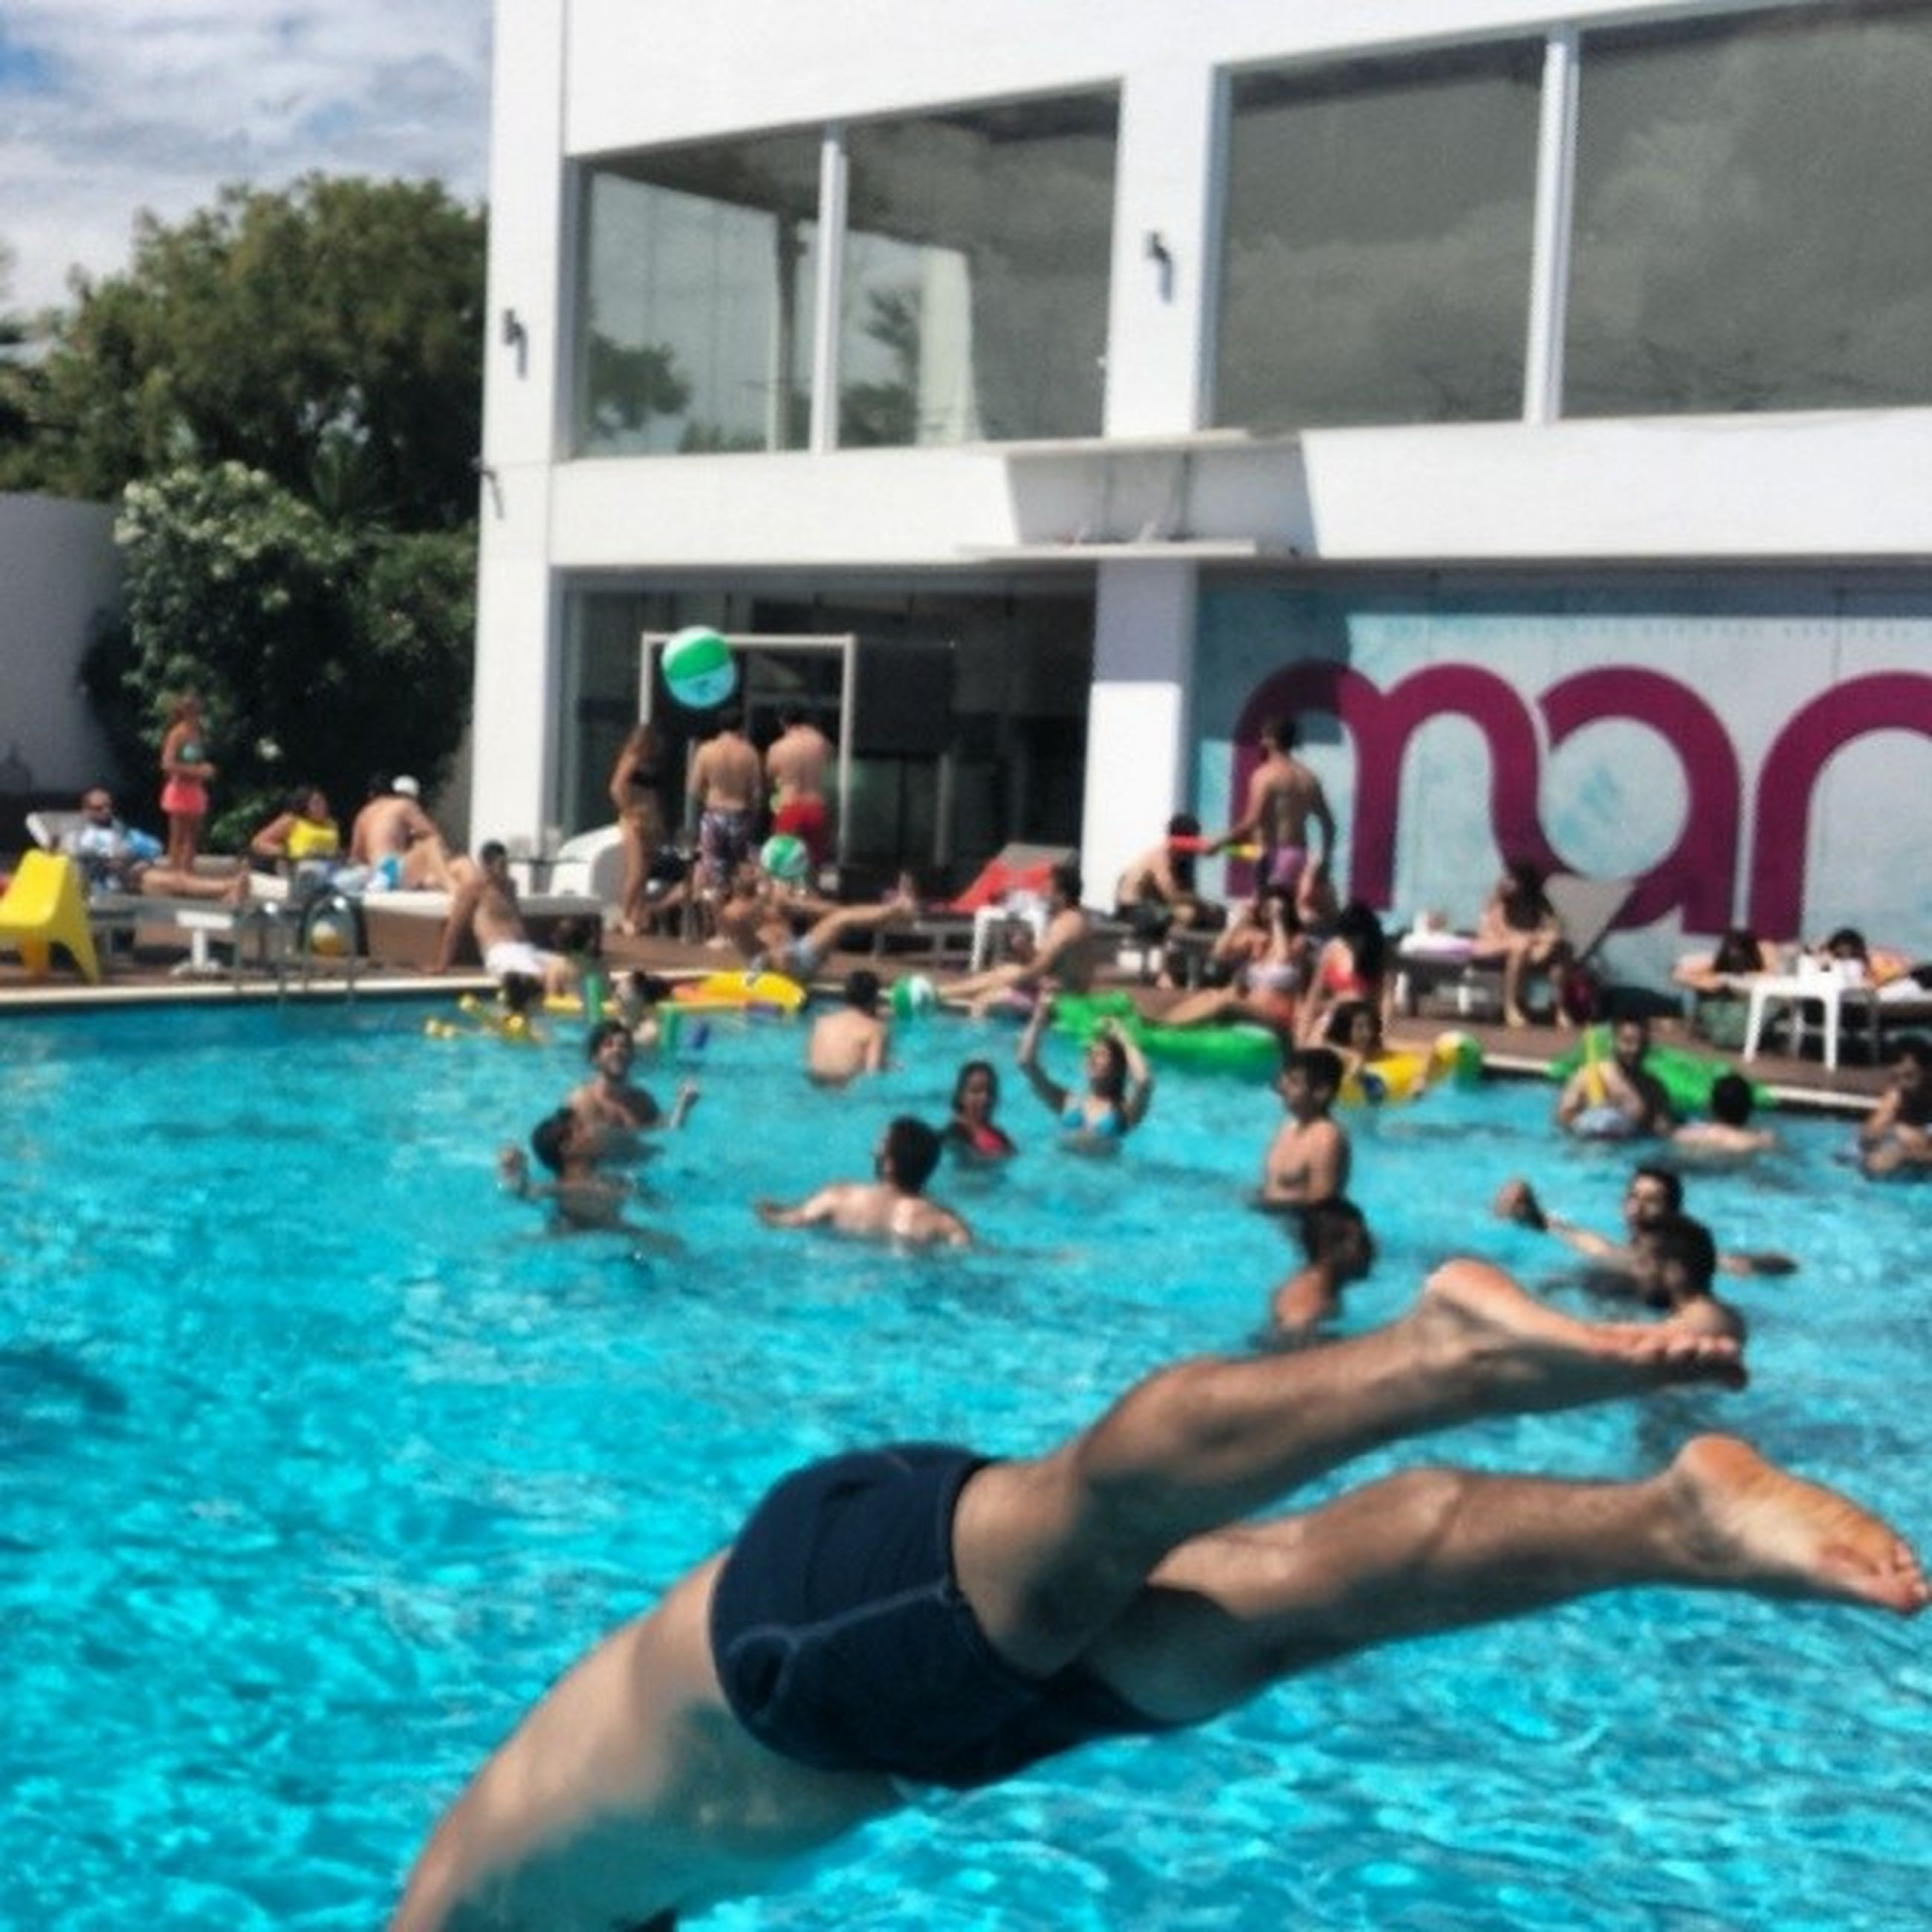 water, lifestyles, leisure activity, swimming pool, men, person, built structure, architecture, building exterior, large group of people, swimming, blue, turquoise colored, enjoyment, fun, waterfront, day